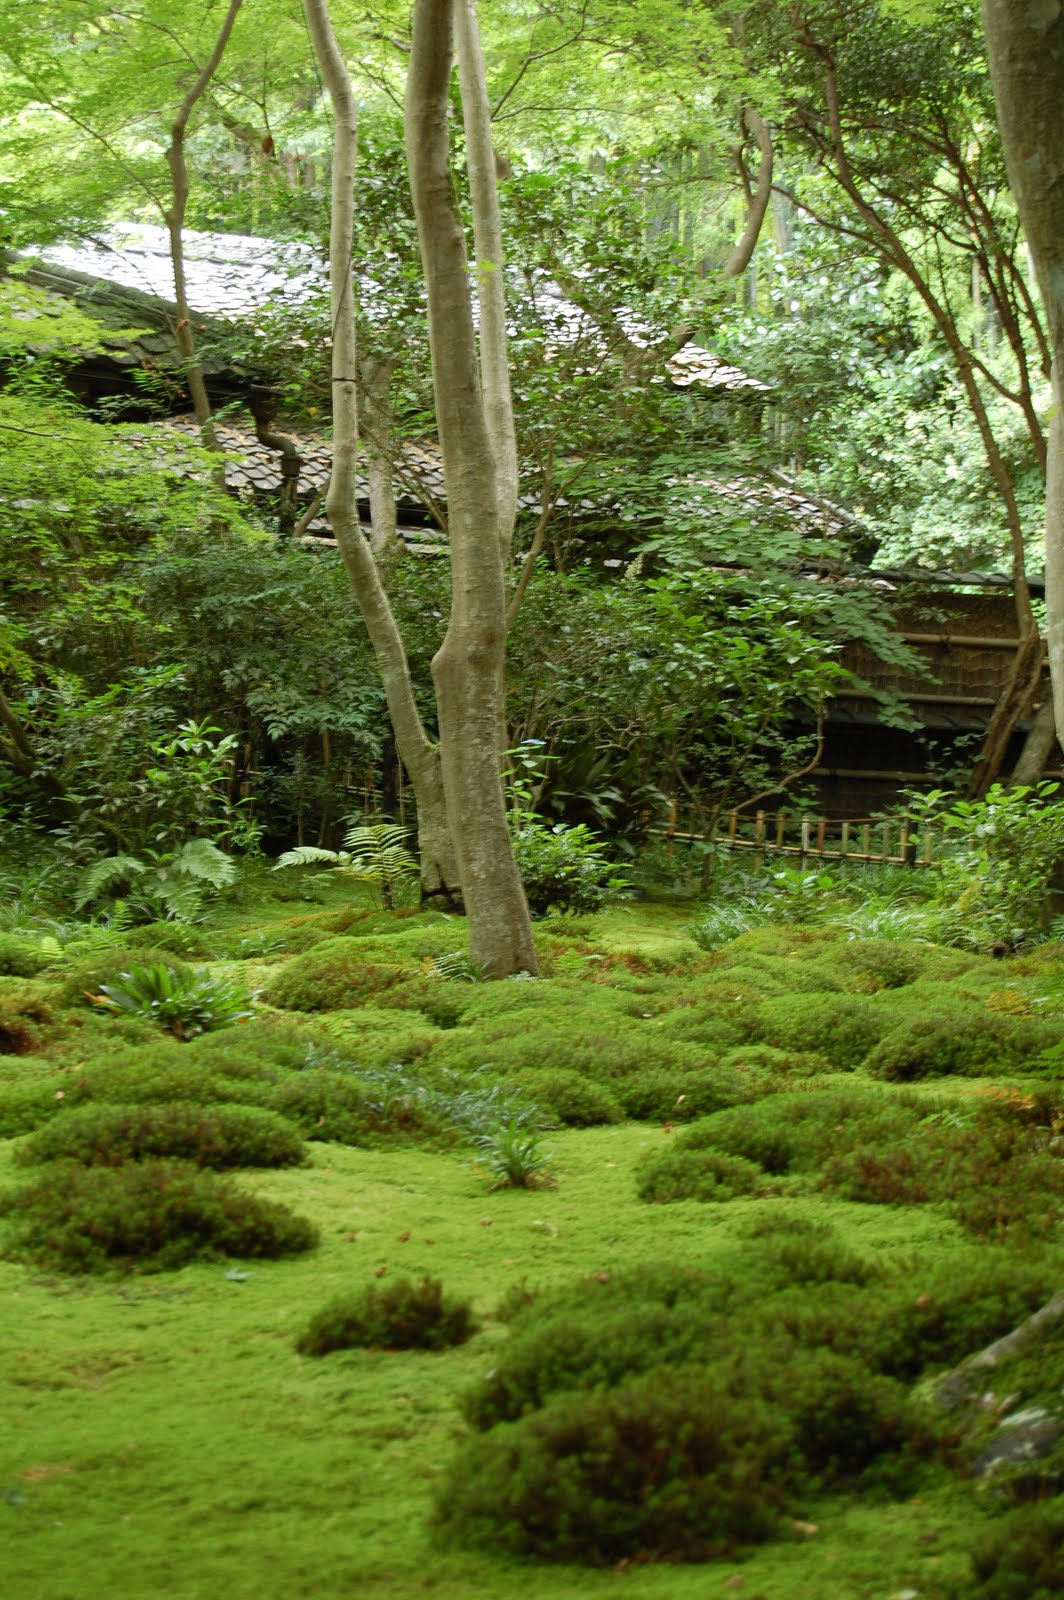 The best moss garden in Kyoto